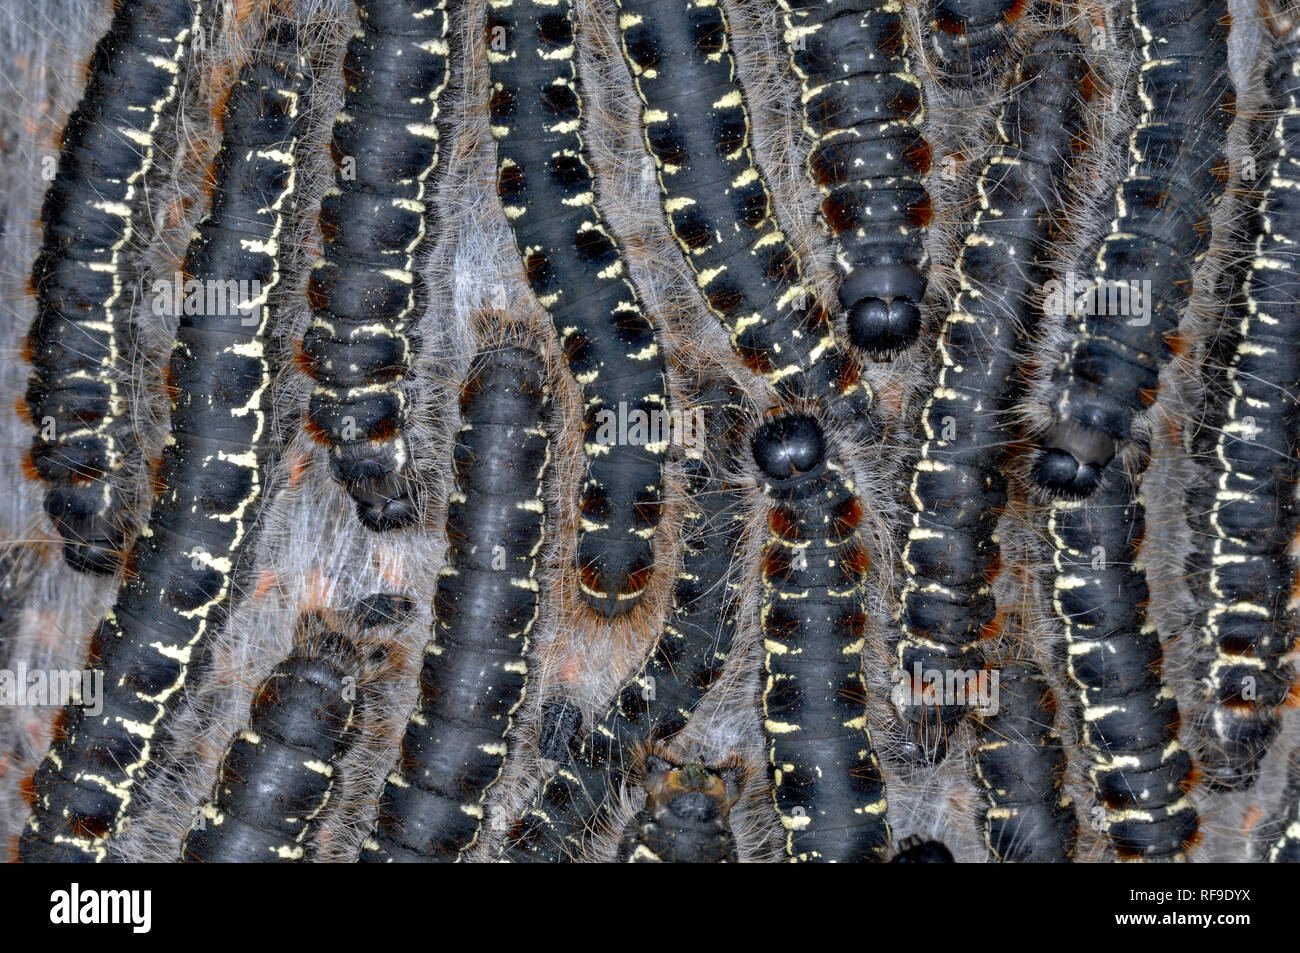 Group or Cluster of Pine Processionary Caterpillars of the Pine Processionary Moth, Thaumetopoea pityocampa - Stock Image